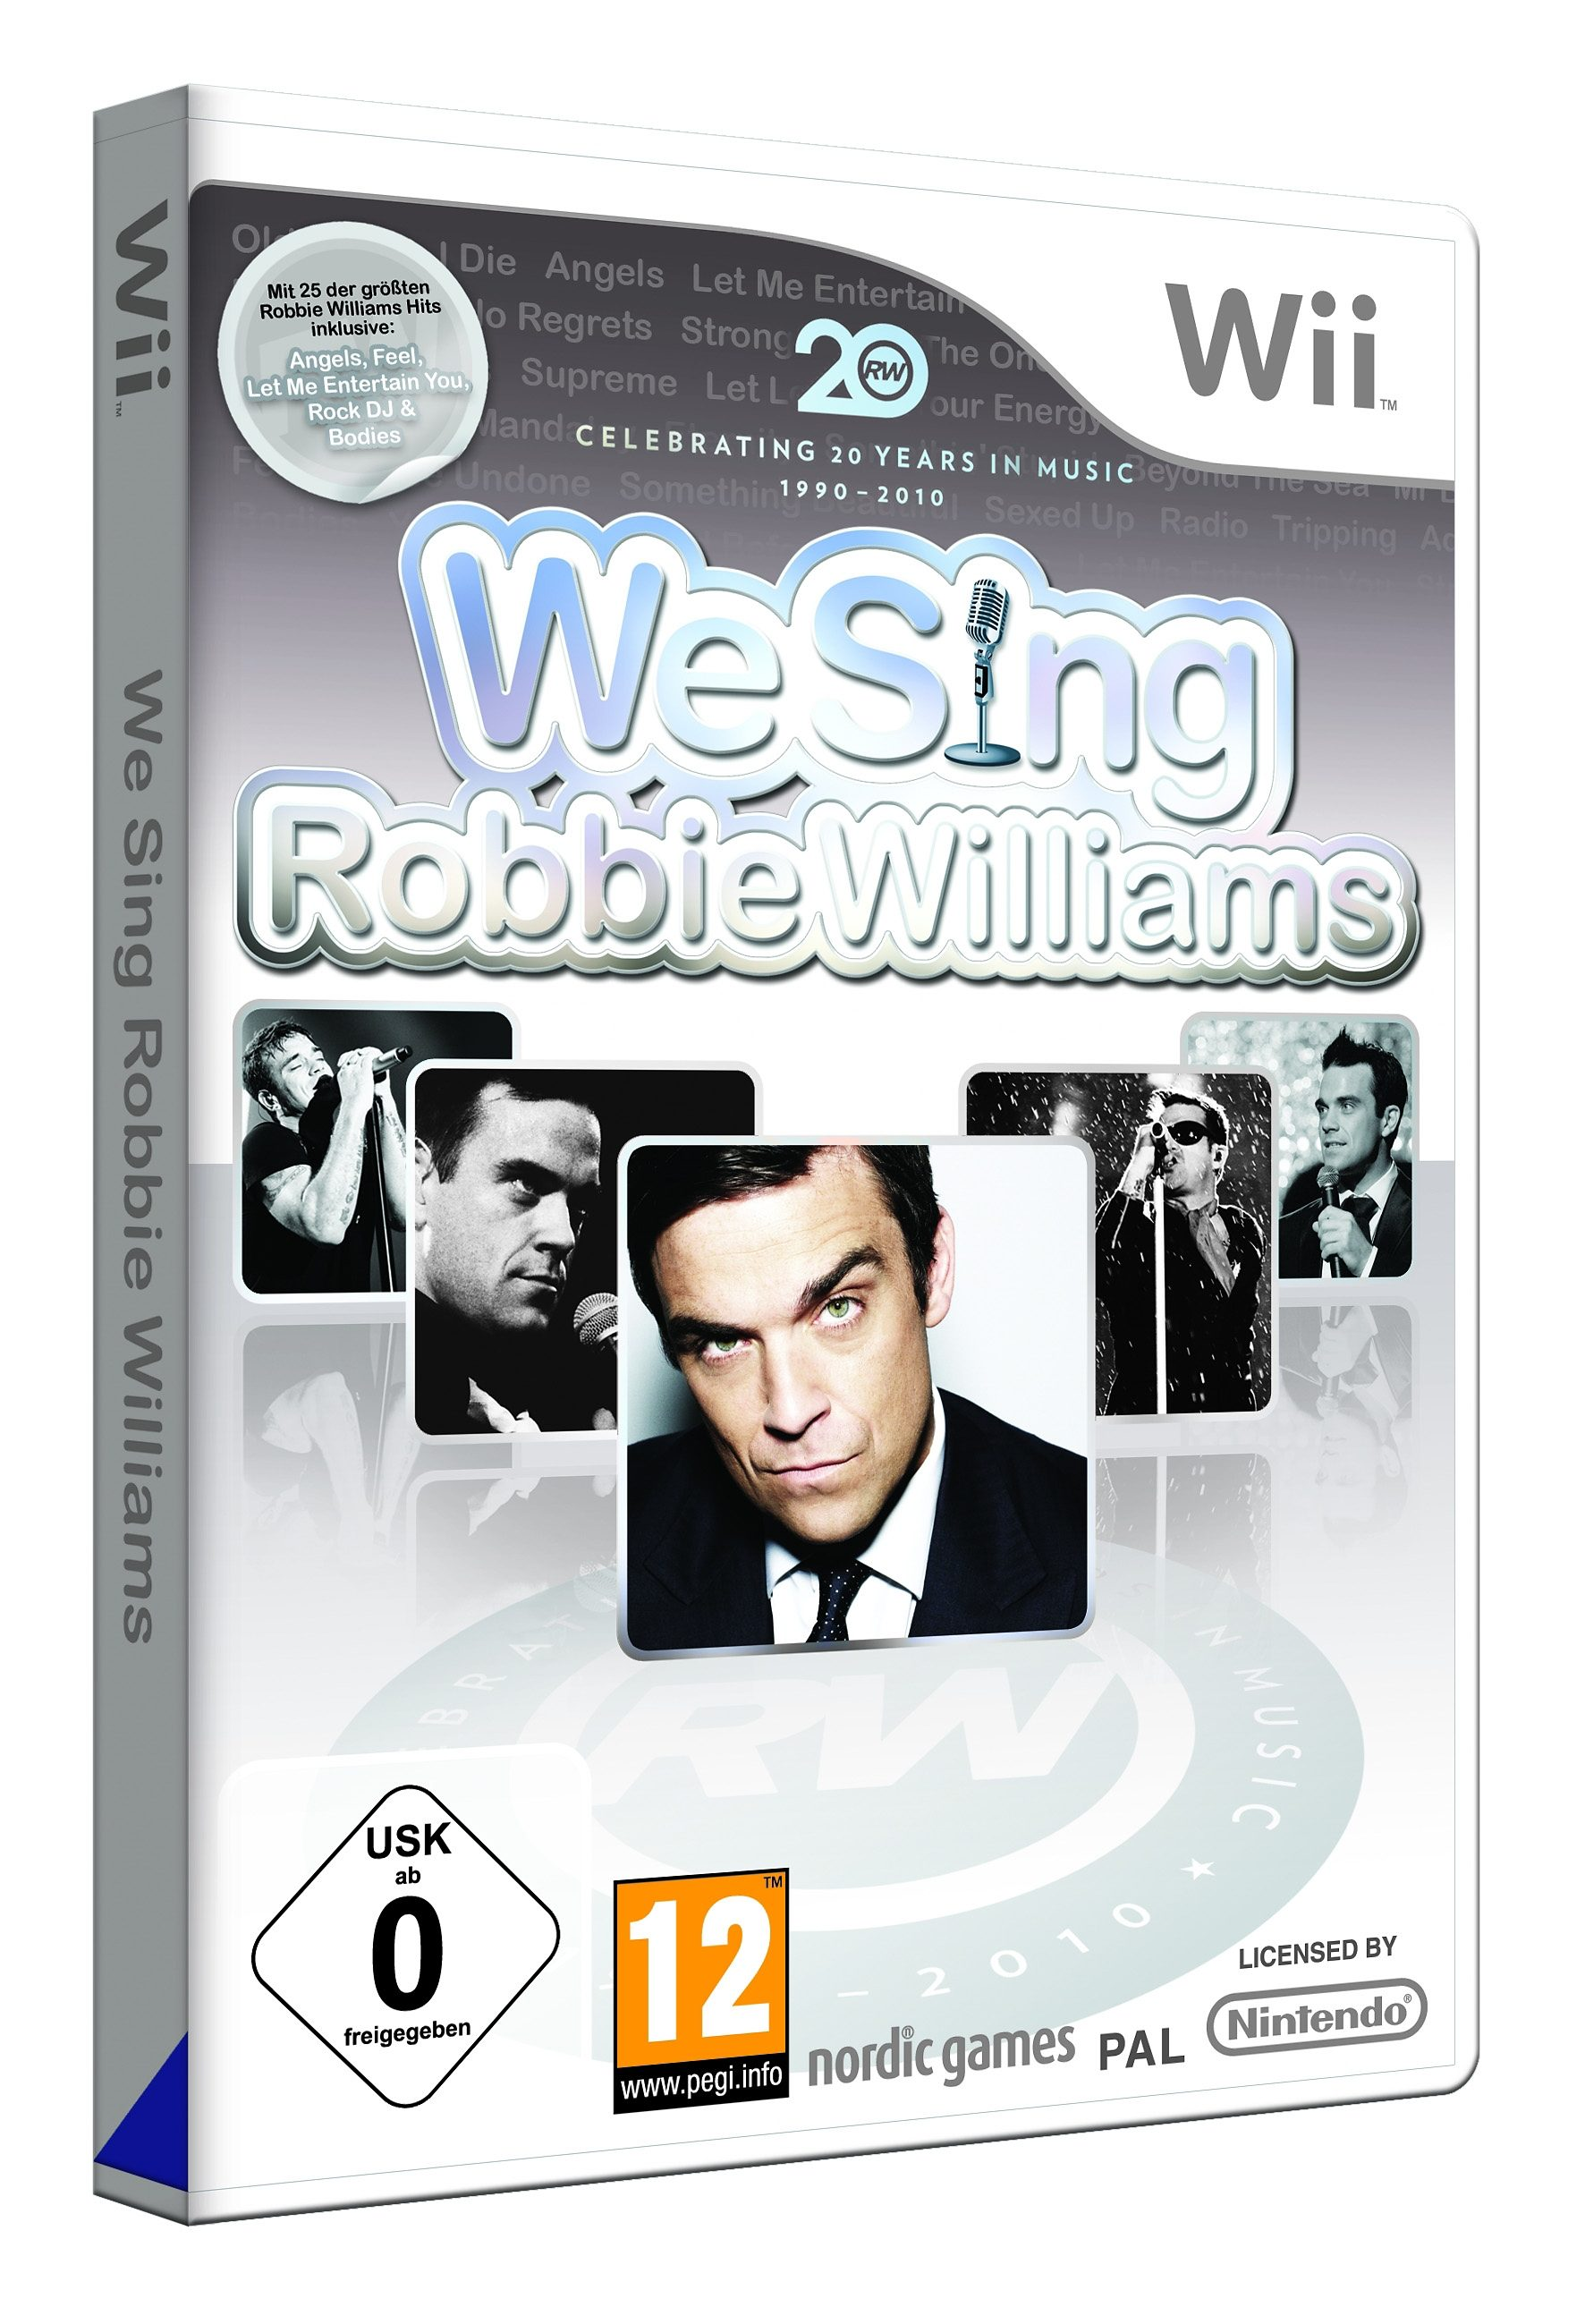 Nordic Games Wii - Spiel »We Sing: Robbie Williams (Standalone)«